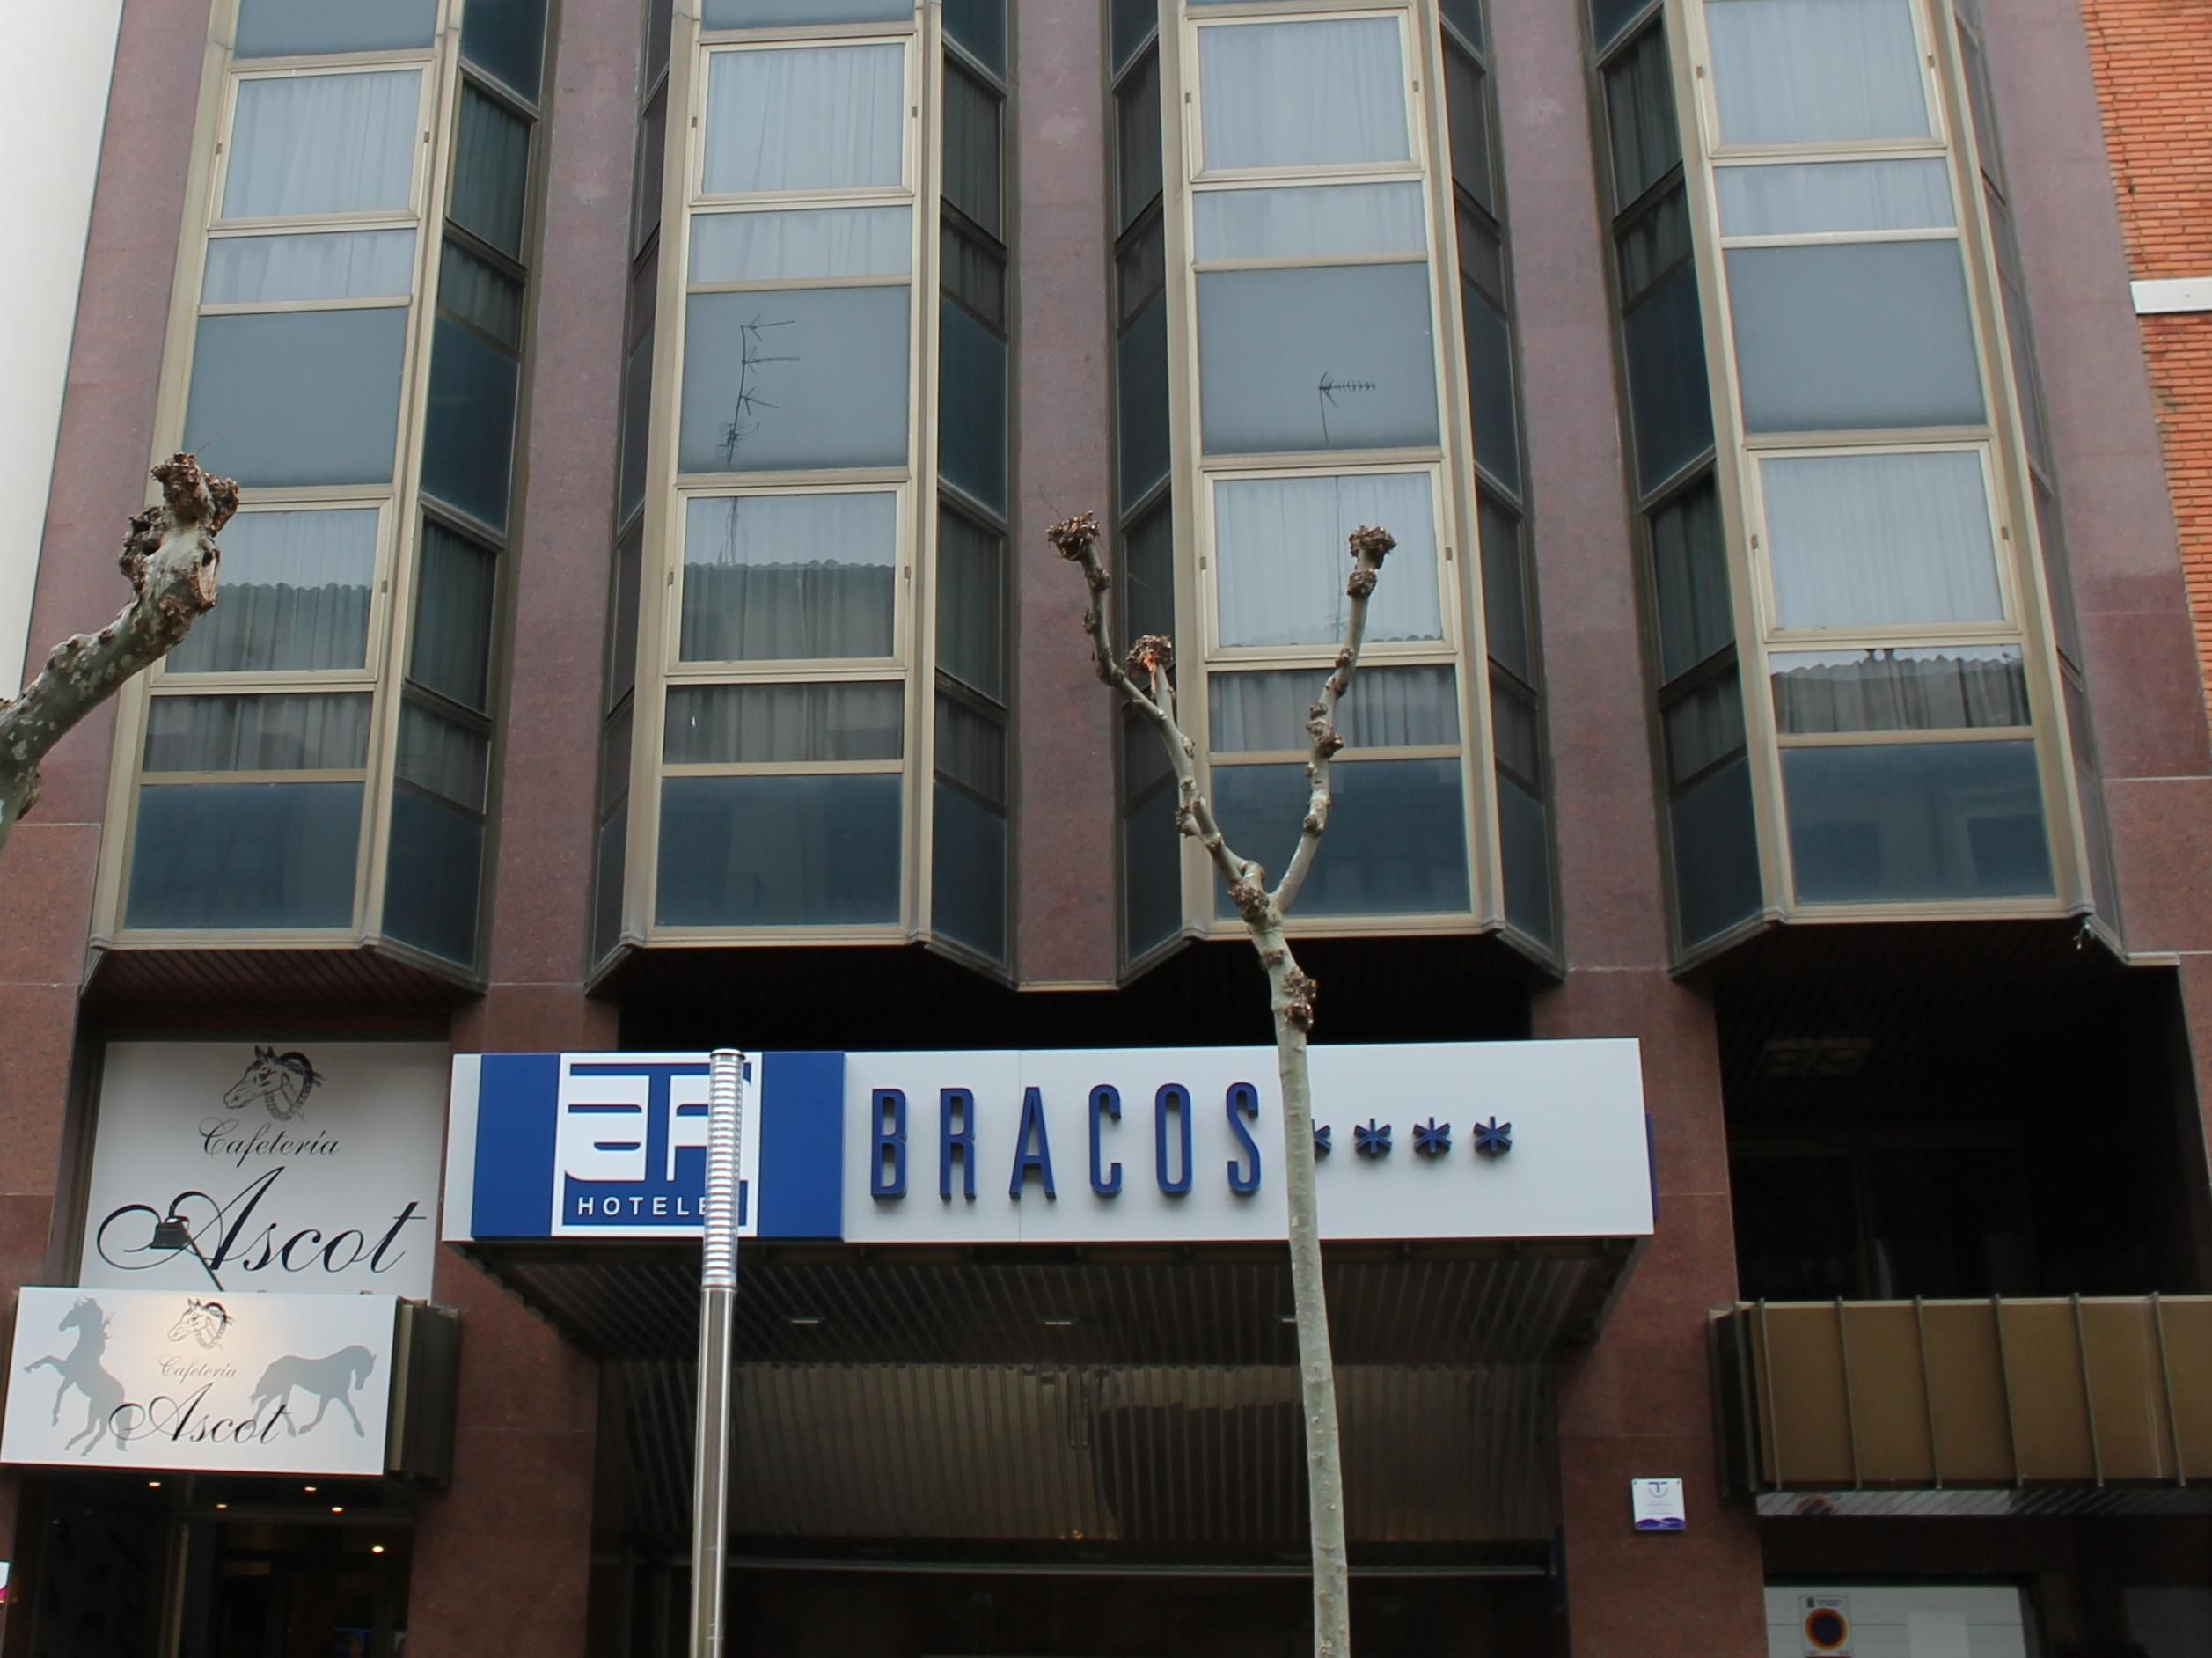 Logrono Hotel Los Bracos Spain Europe Is Perfectly Located For Both Business